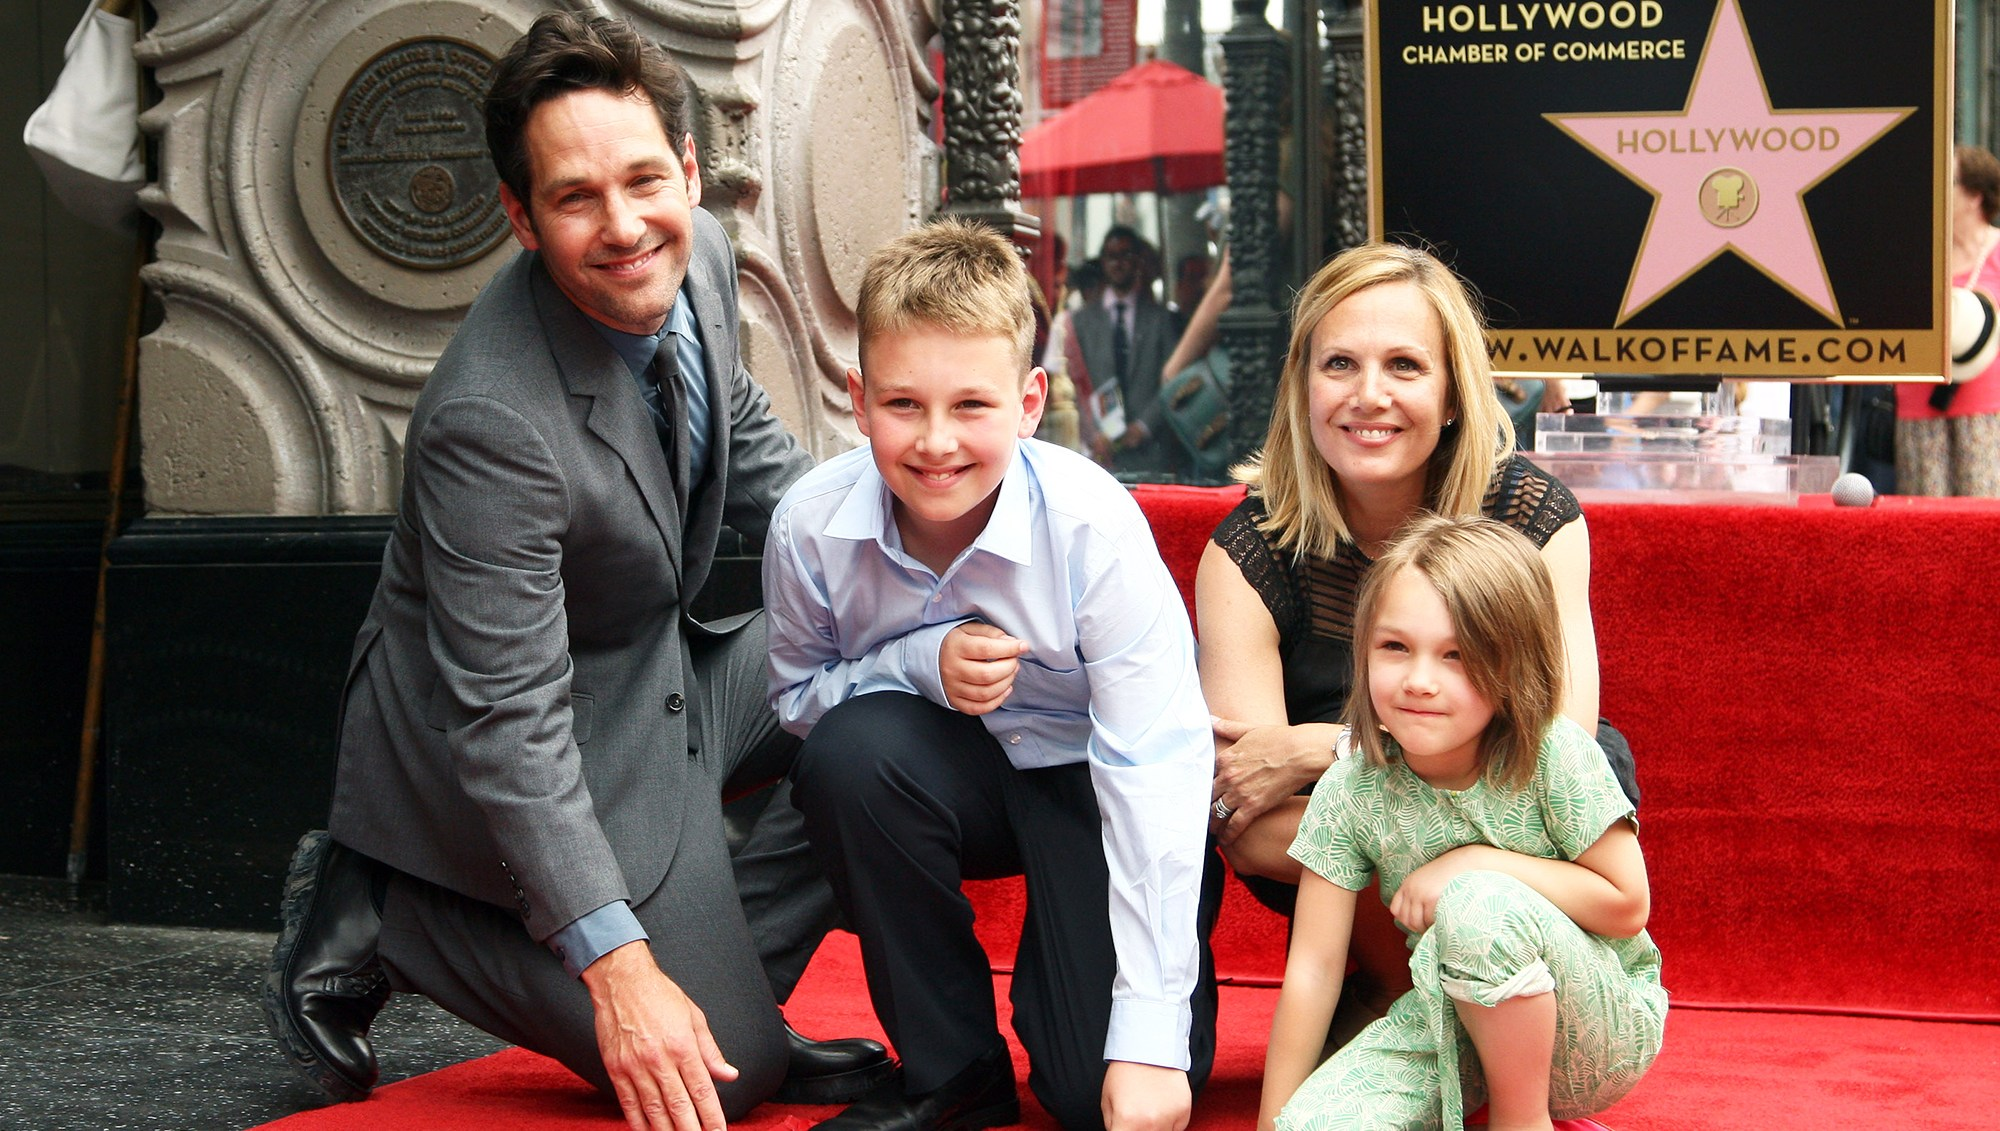 paul rudd Family Holiday